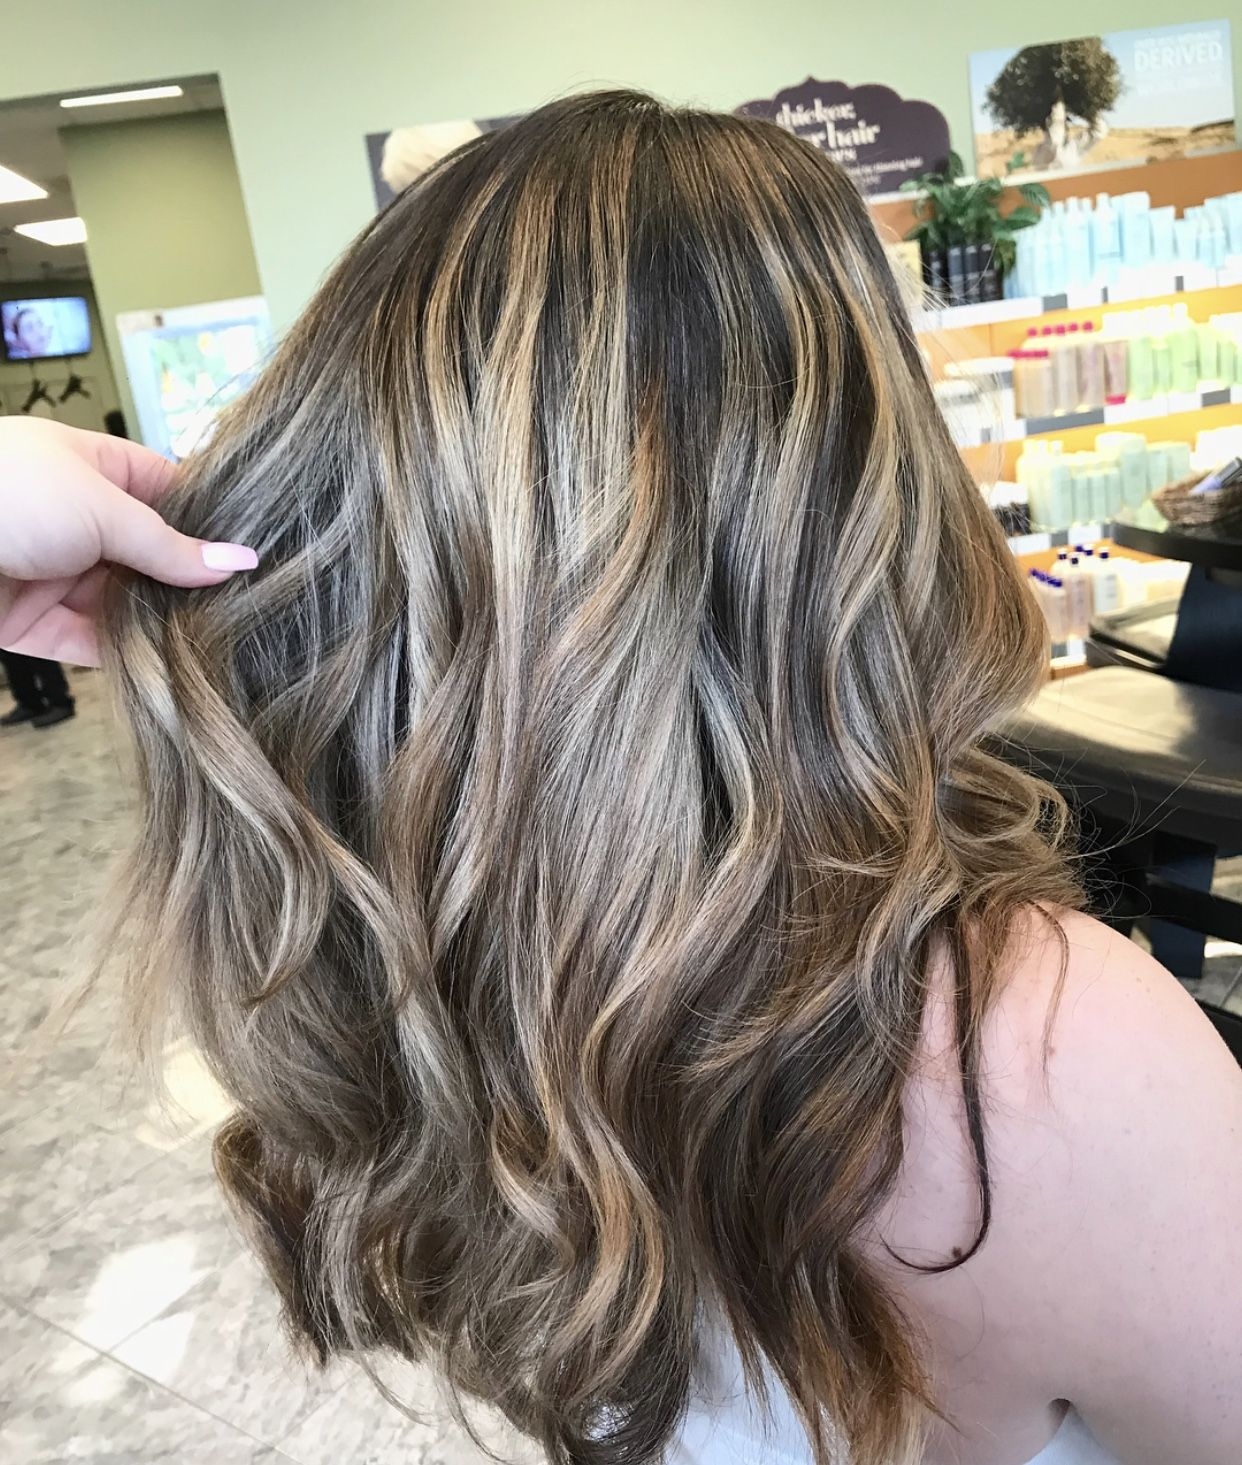 Beautiful light brown color blonde highlights | Blonde ...